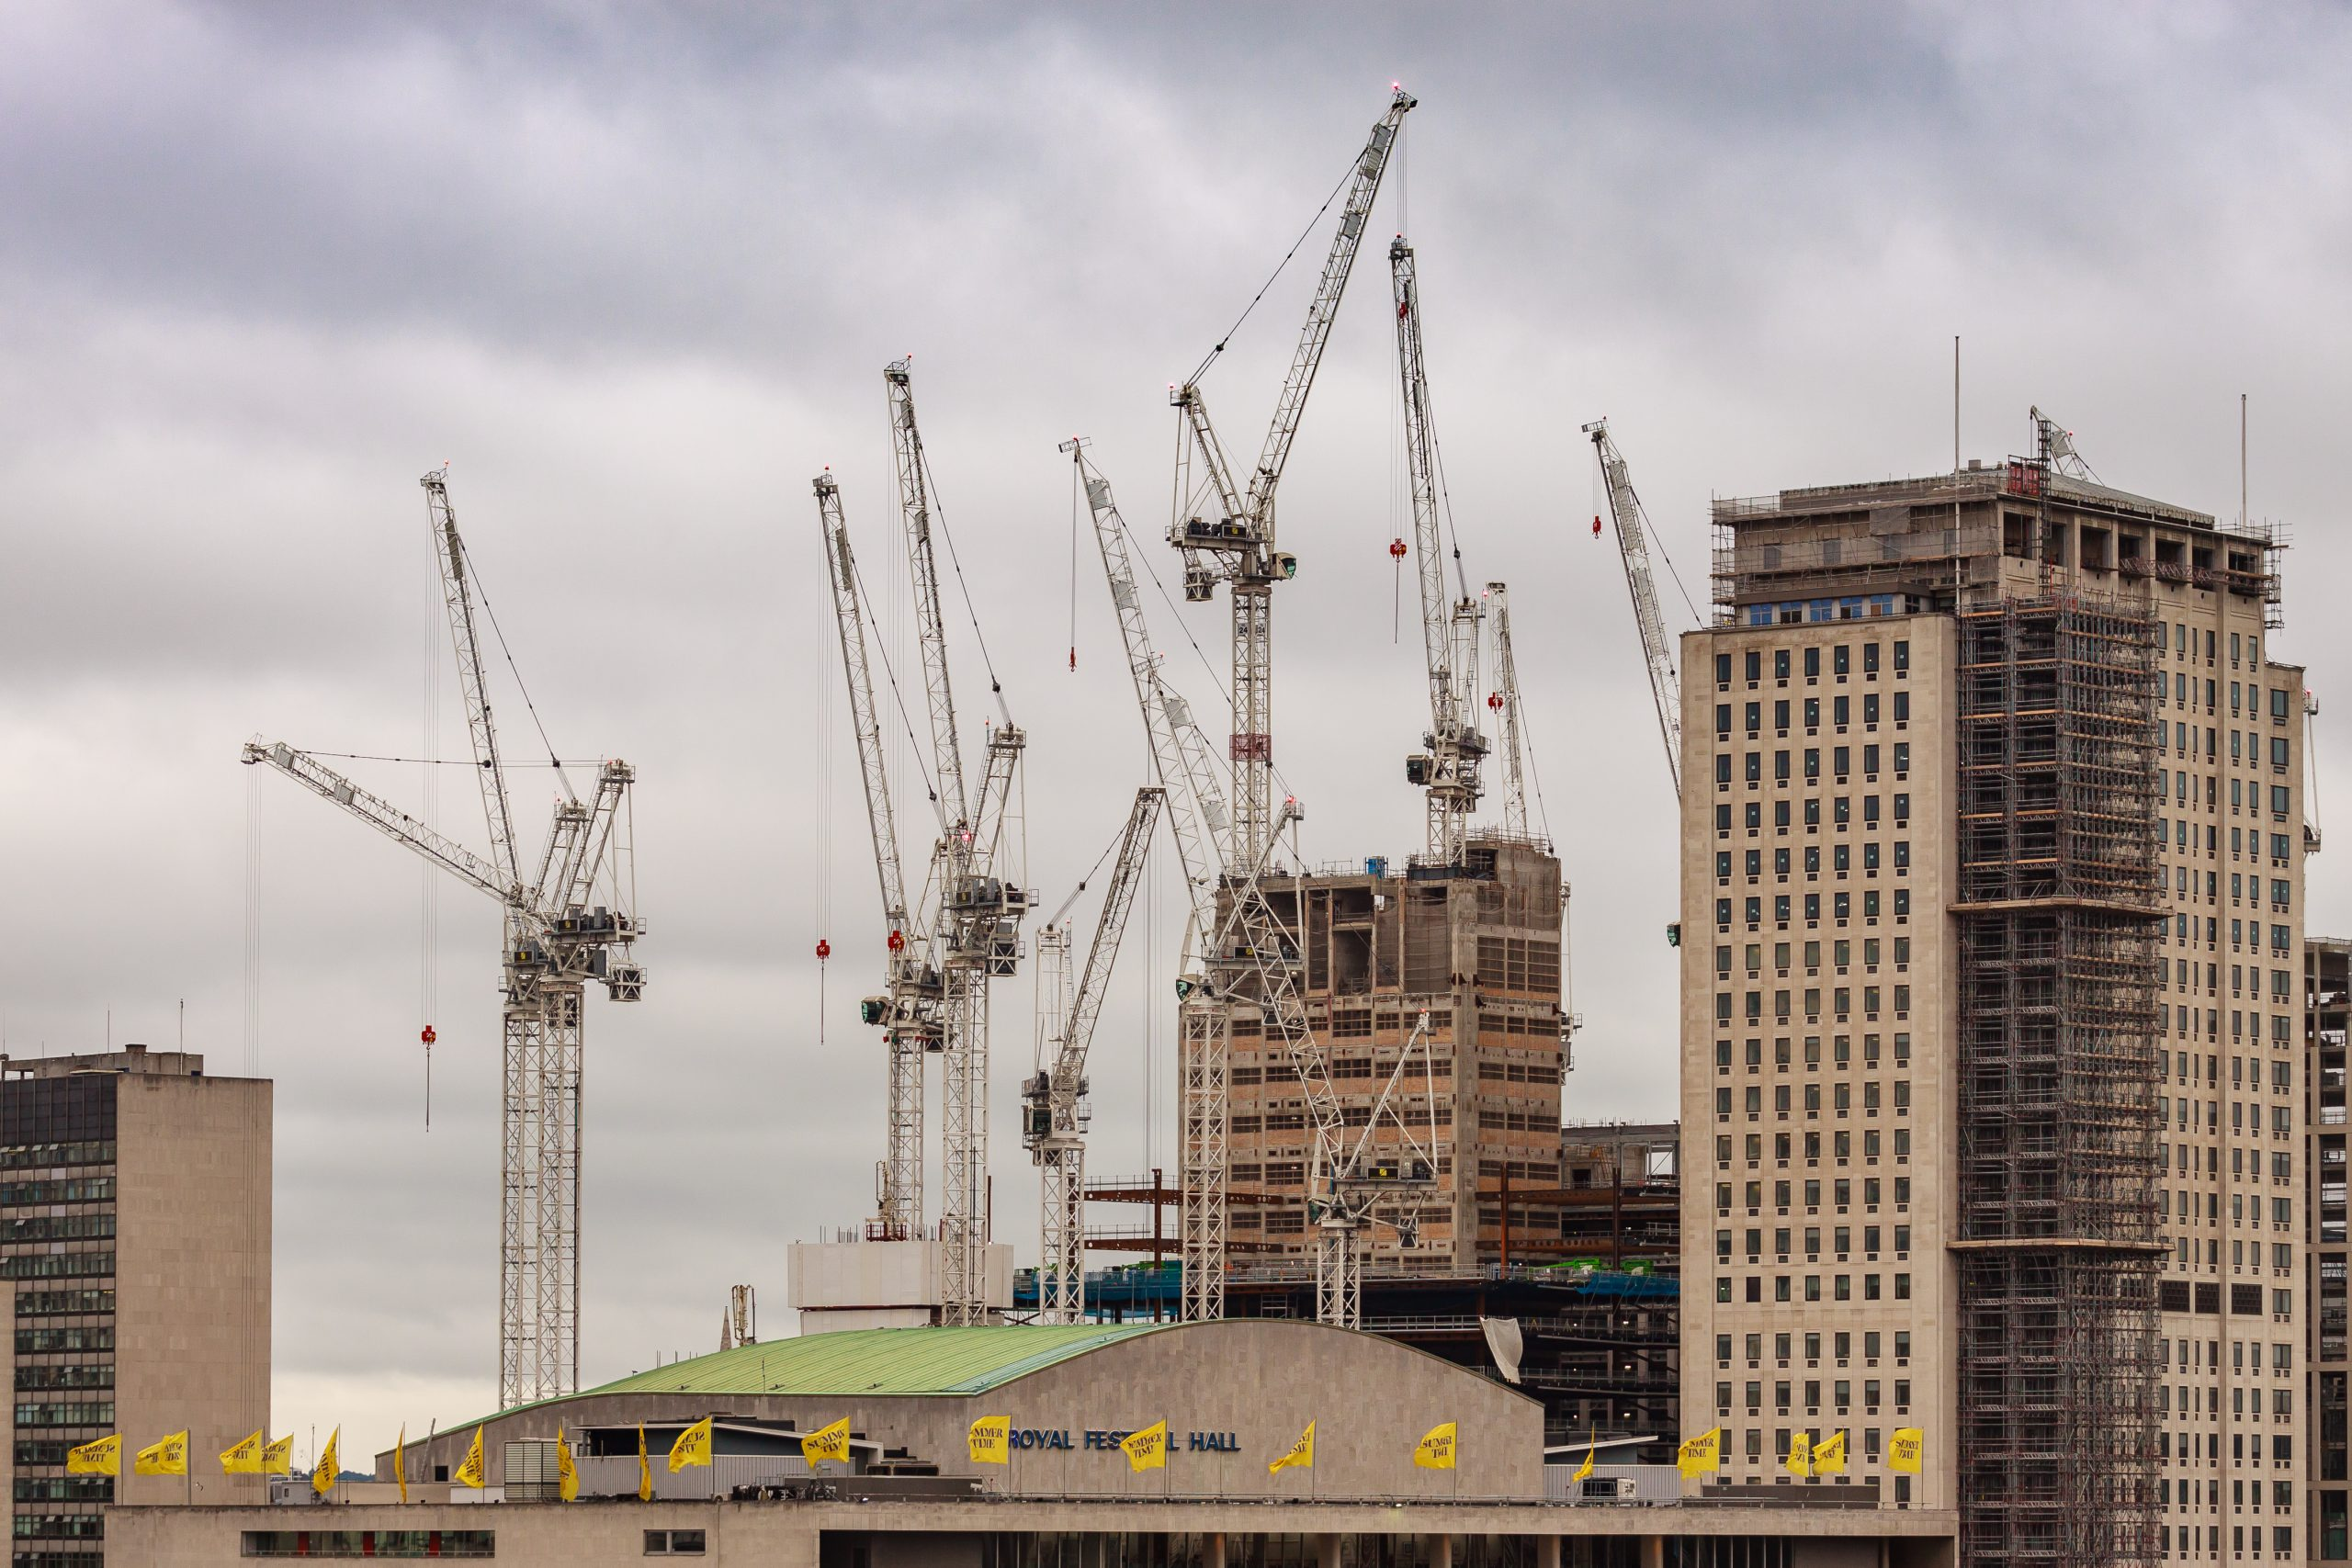 Picture of cranes and commercial skyscraper